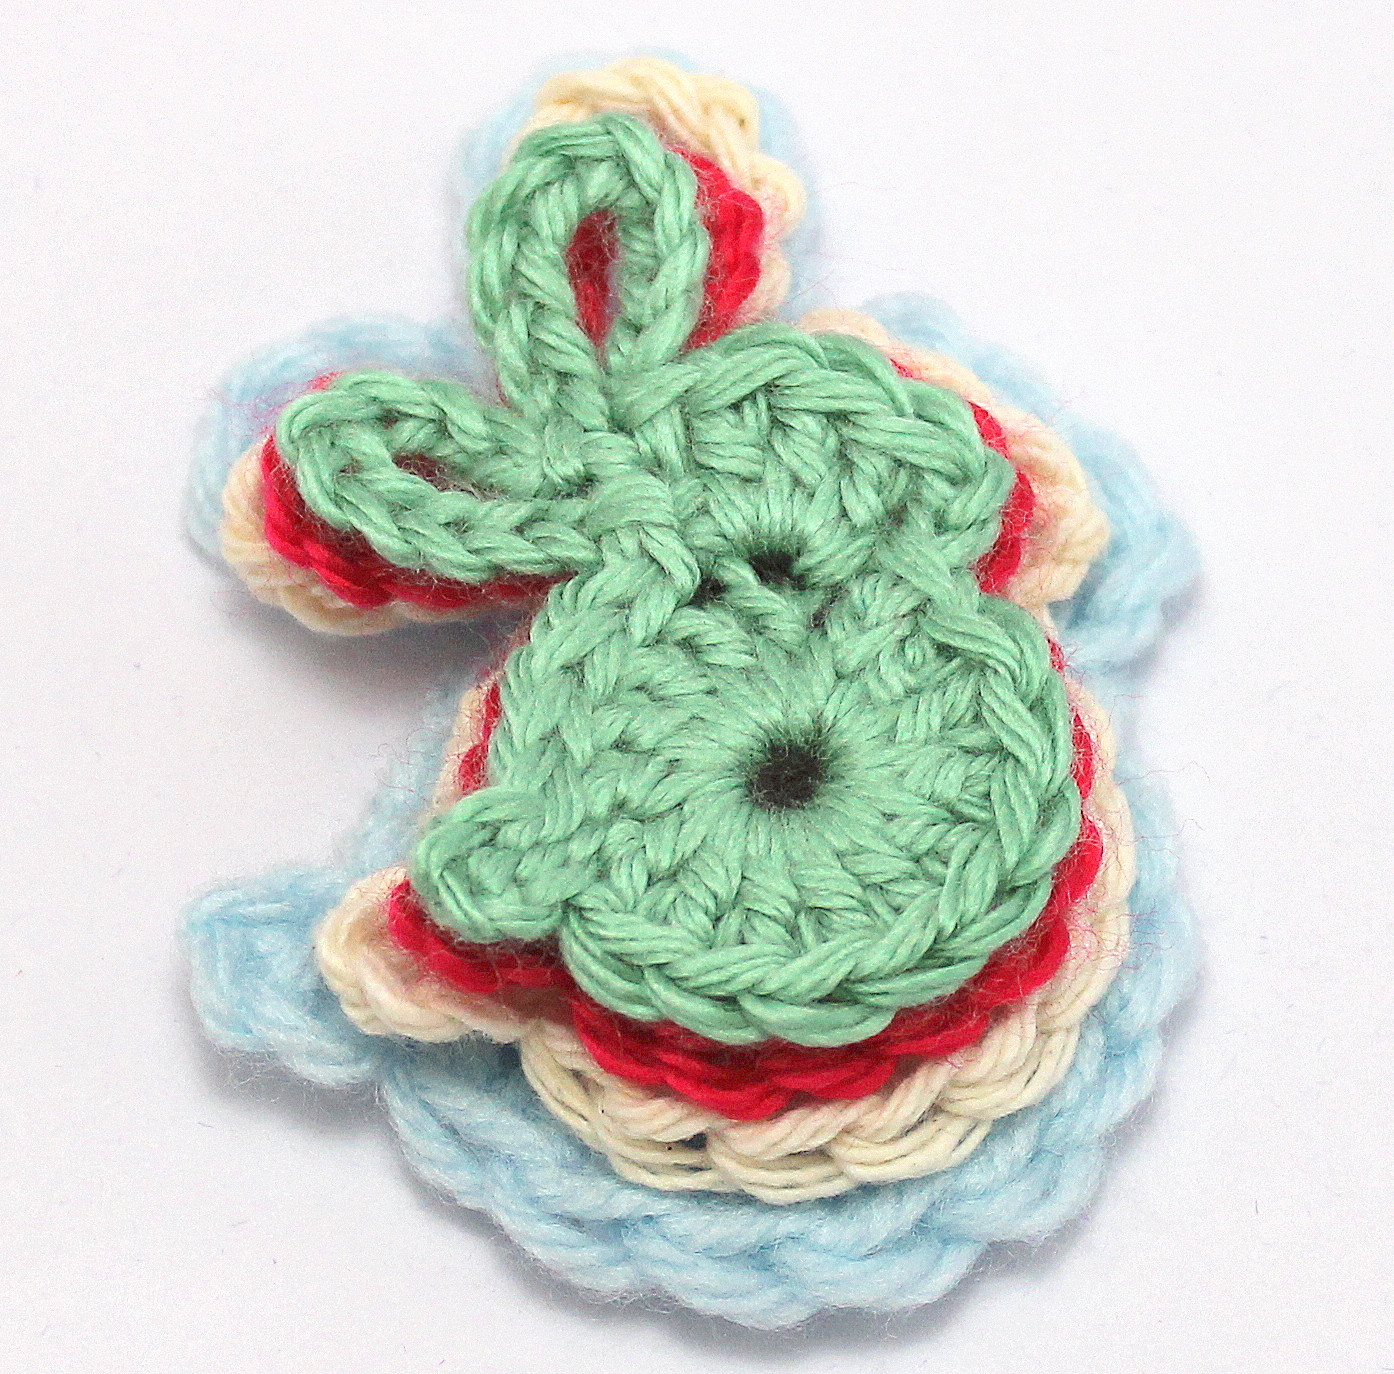 Crochet Bunny Pattern Free Fresh Cute Bunny Applique Of Charming 50 Pictures Crochet Bunny Pattern Free